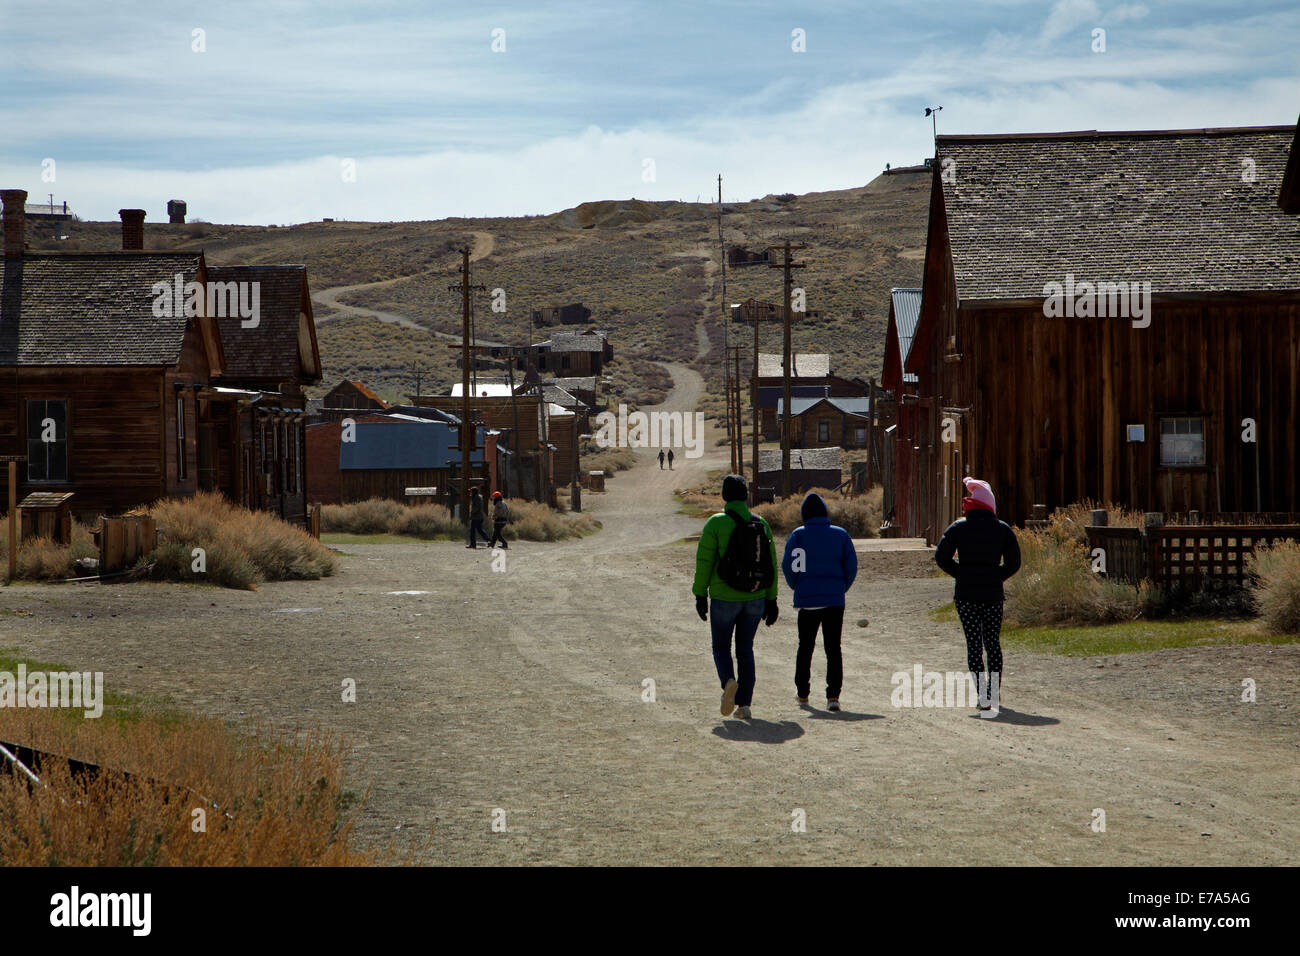 Tourists, Green Street, Bodie Ghost Town, Bodie Hills, Mono County, Eastern Sierra, California, USA - Stock Image